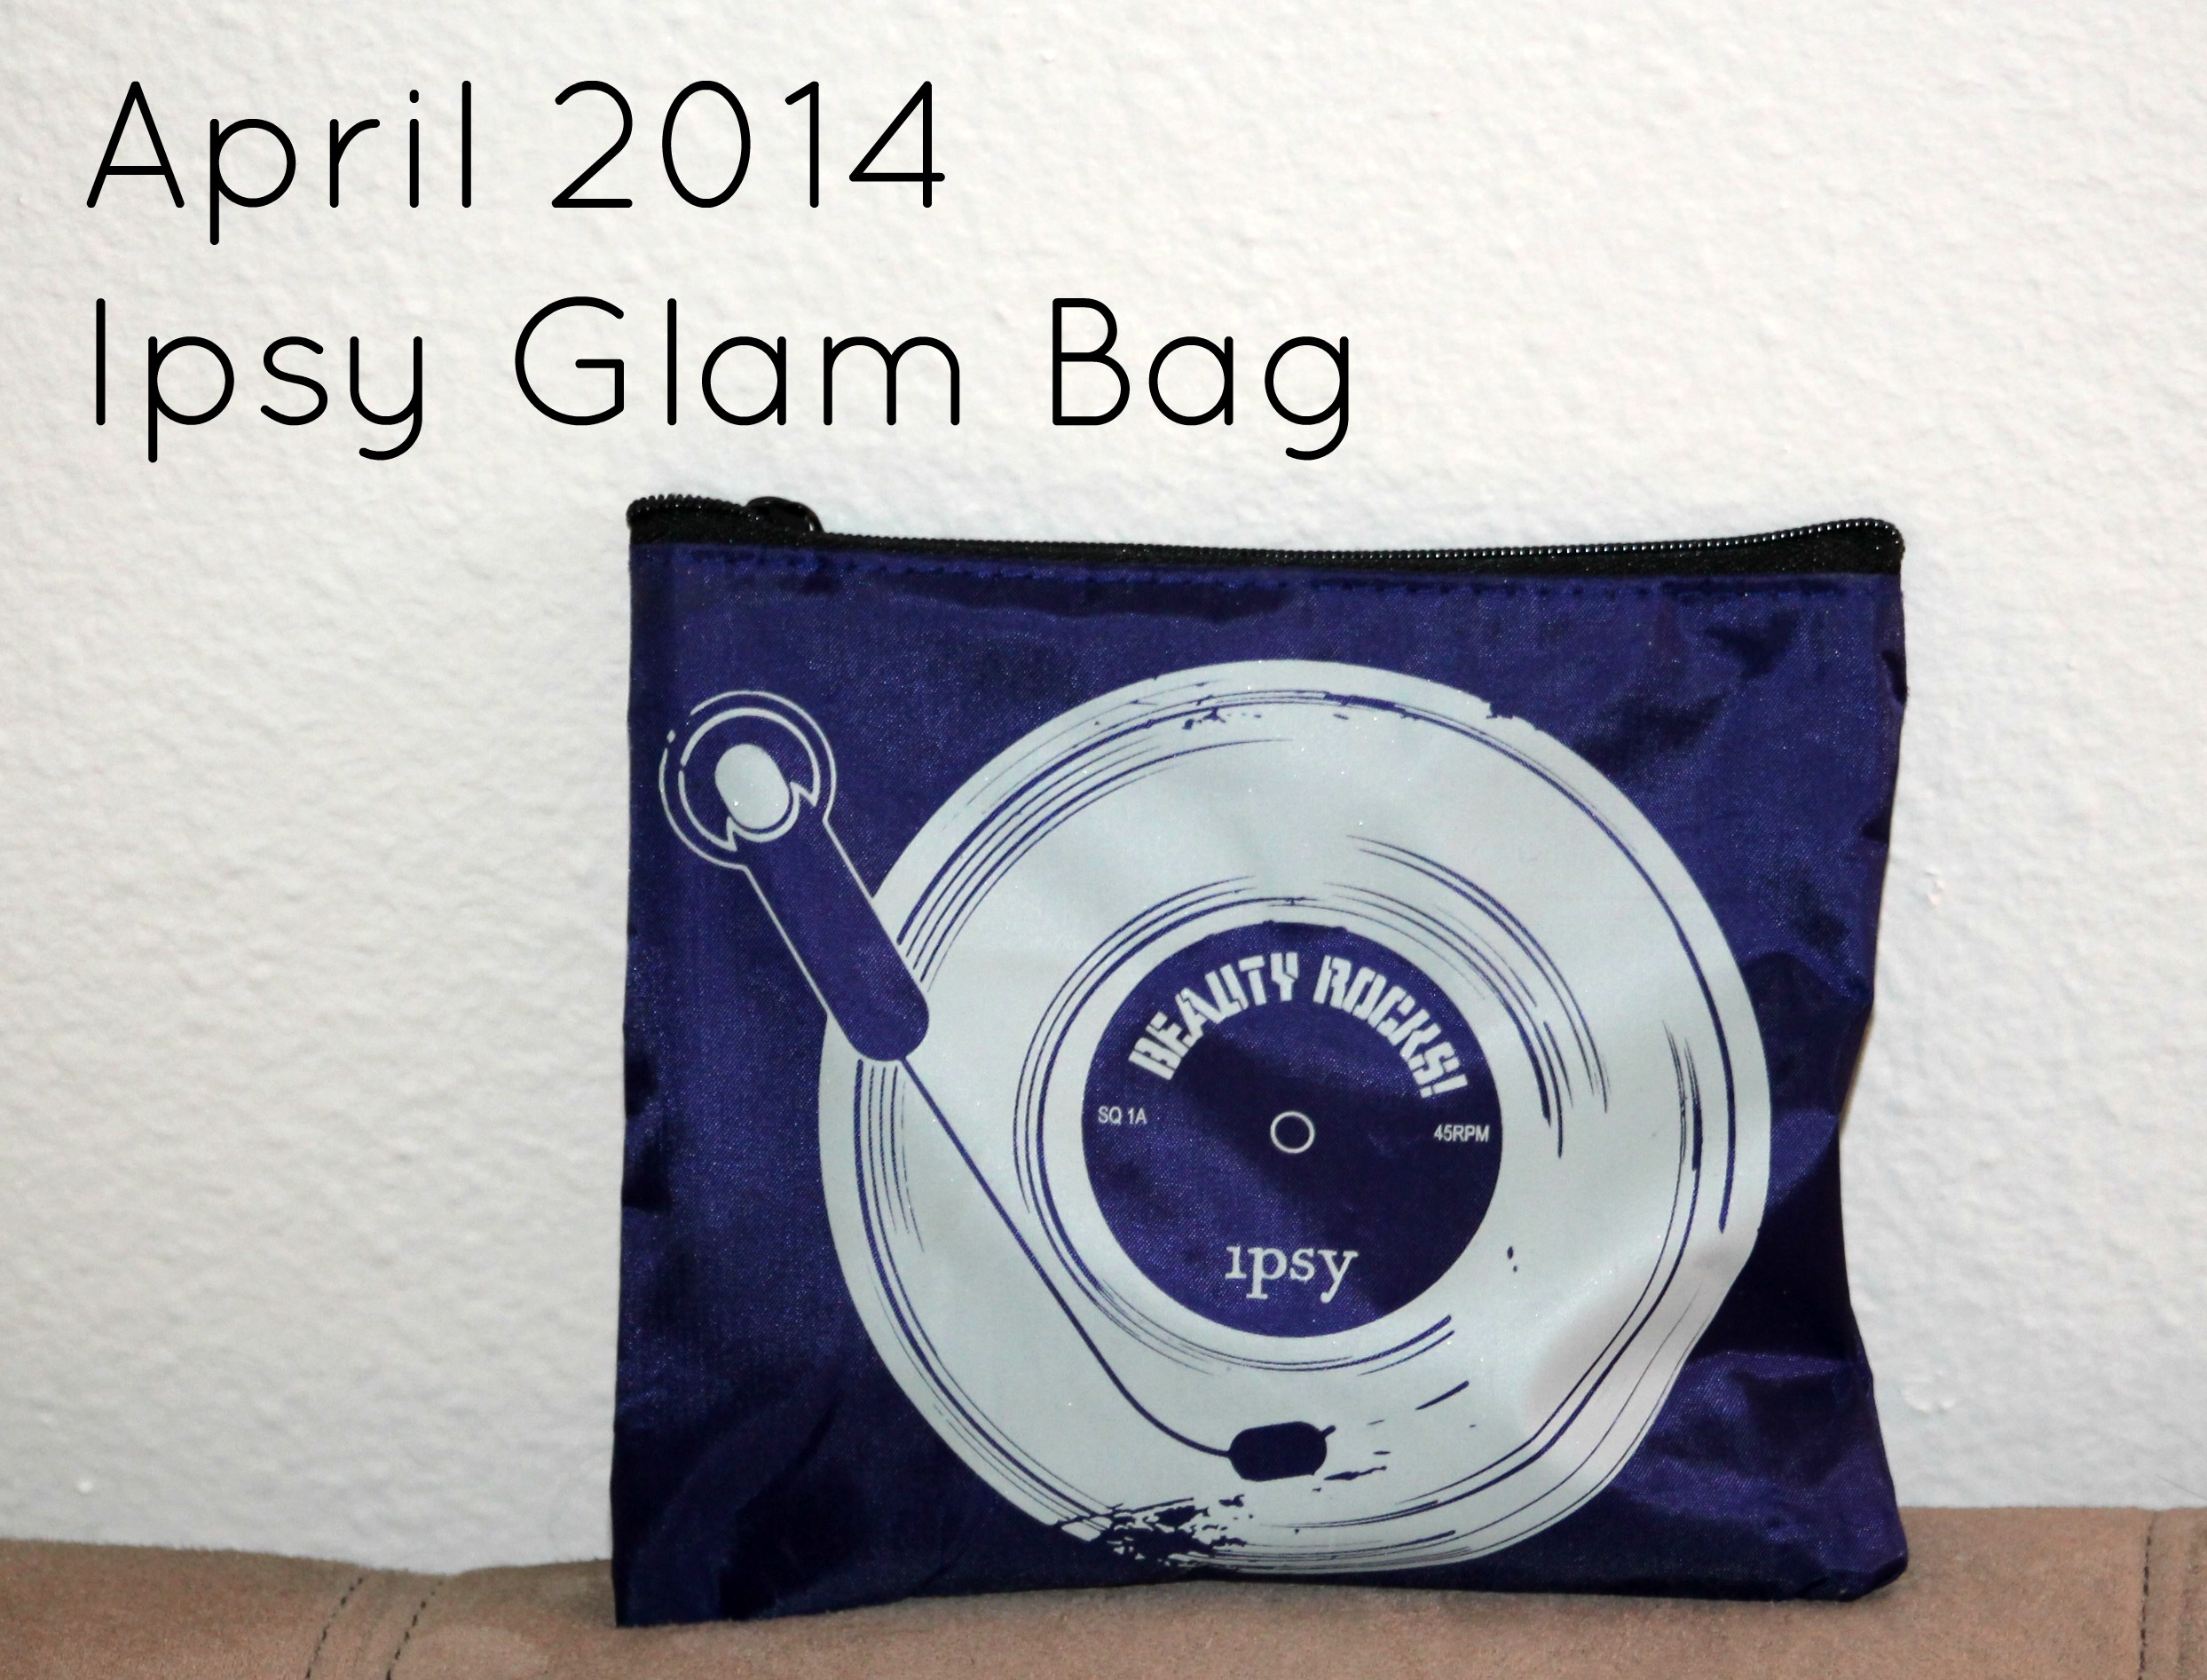 April 2014 Ipsy Glam Bag Review